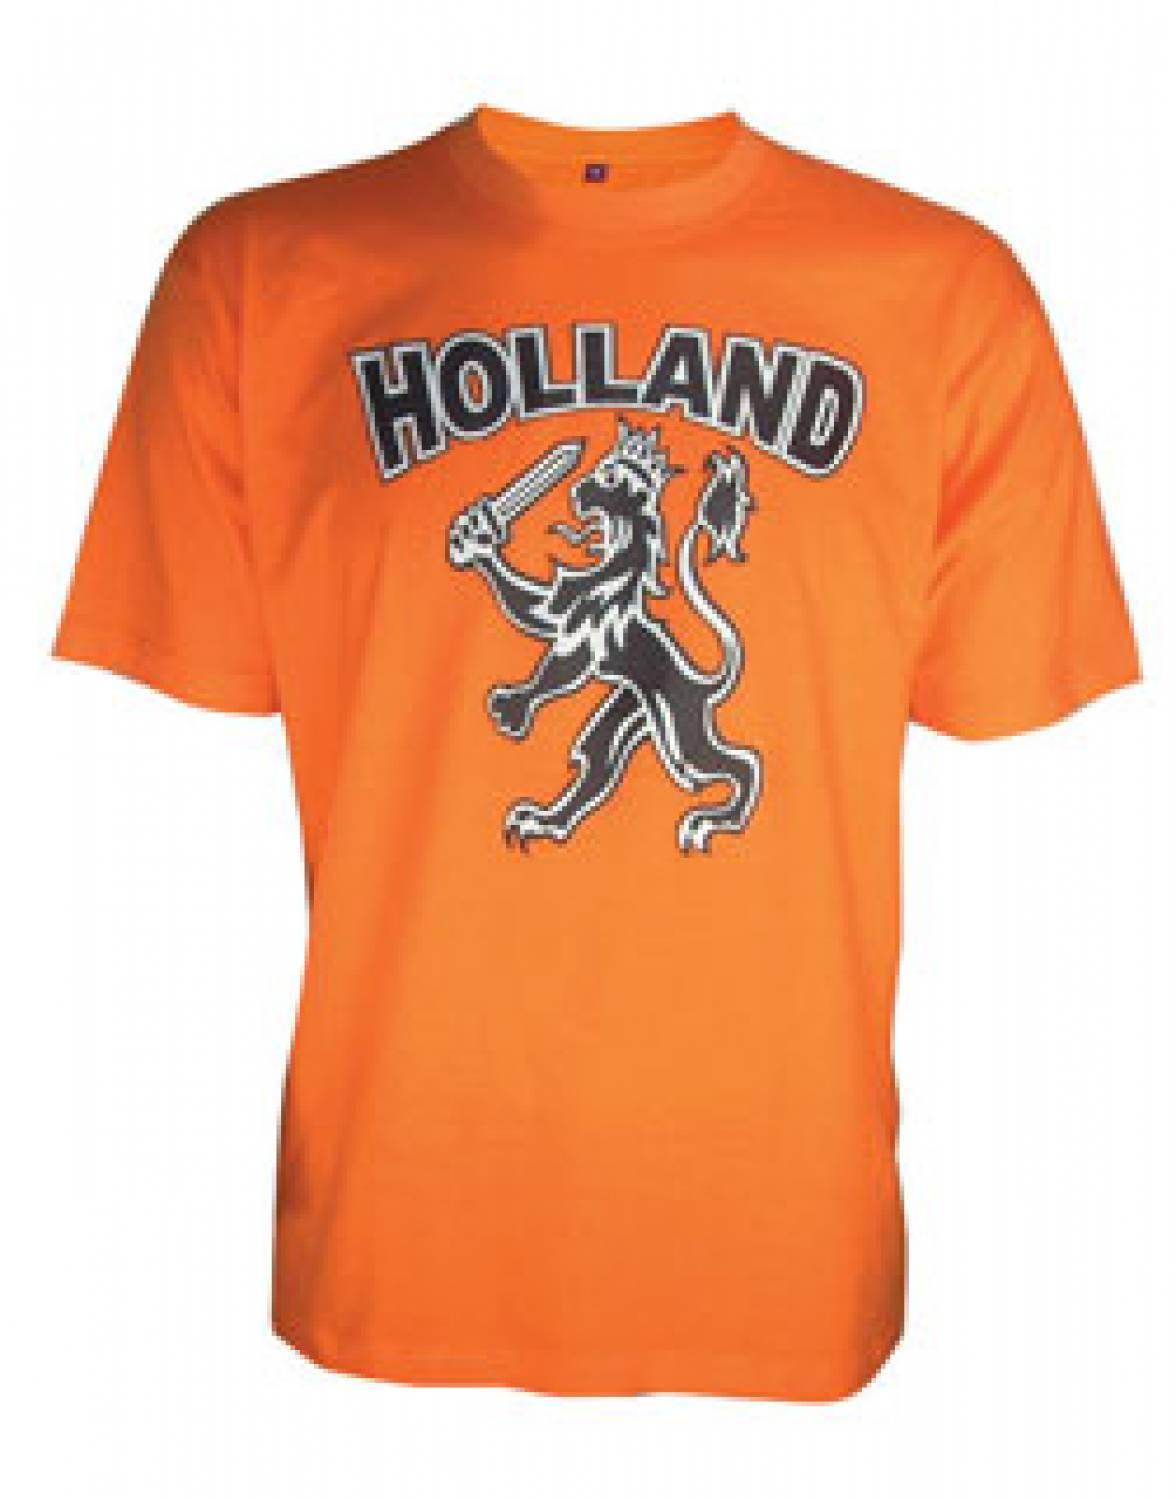 wm 2014 g nstig kaufen orangefarbenen t shirts die holland zu lesen. Black Bedroom Furniture Sets. Home Design Ideas